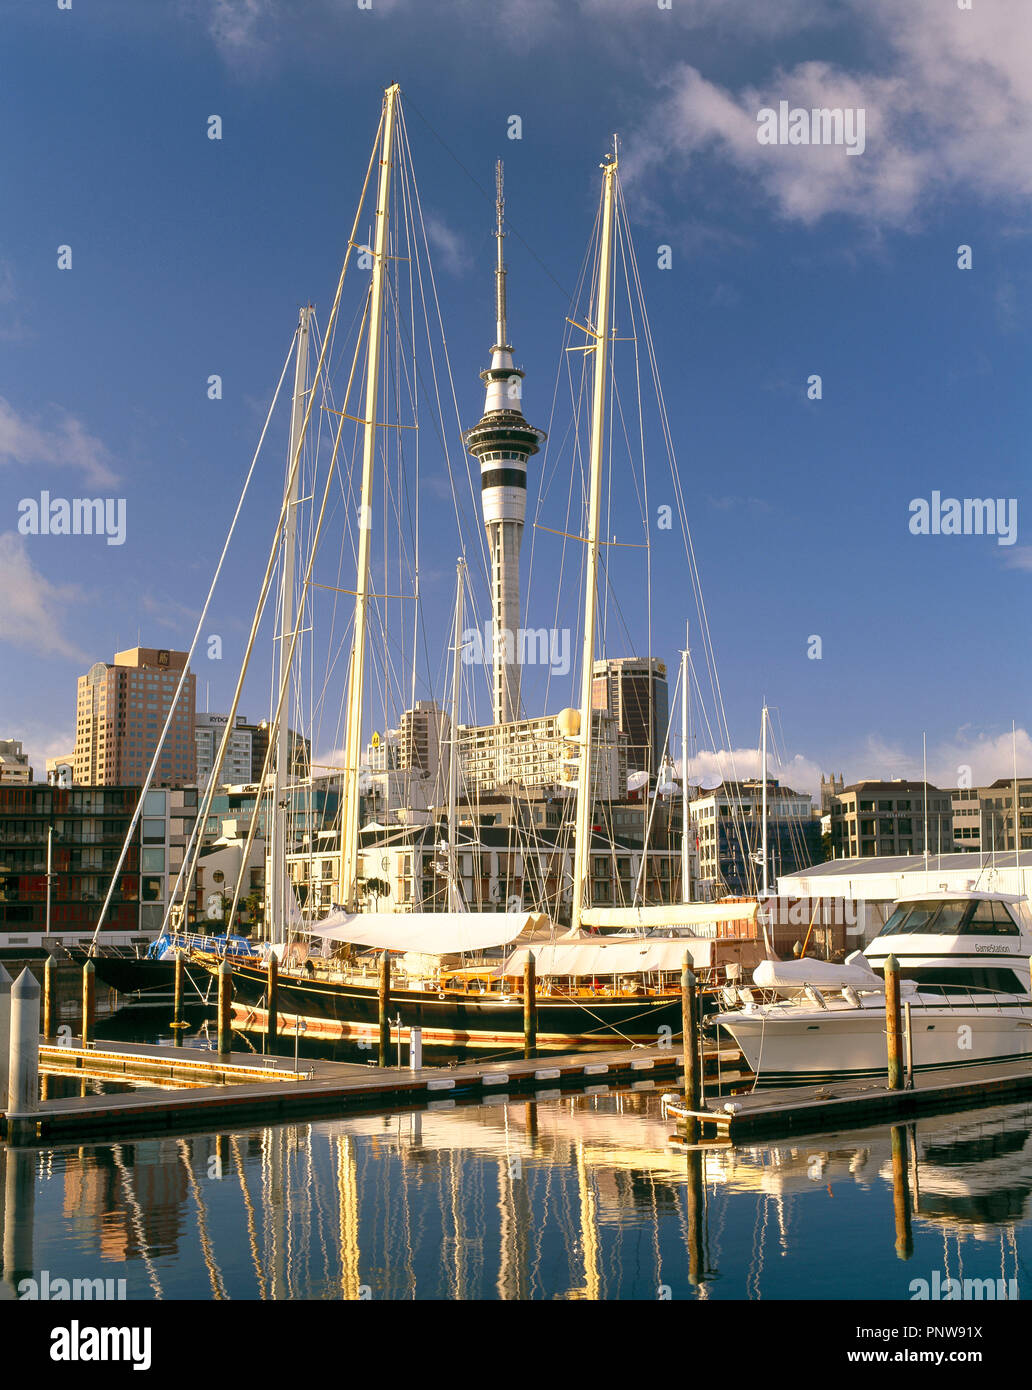 New Zealand. Auckland. City harbour scene with moored boats and Sky Tower. - Stock Image